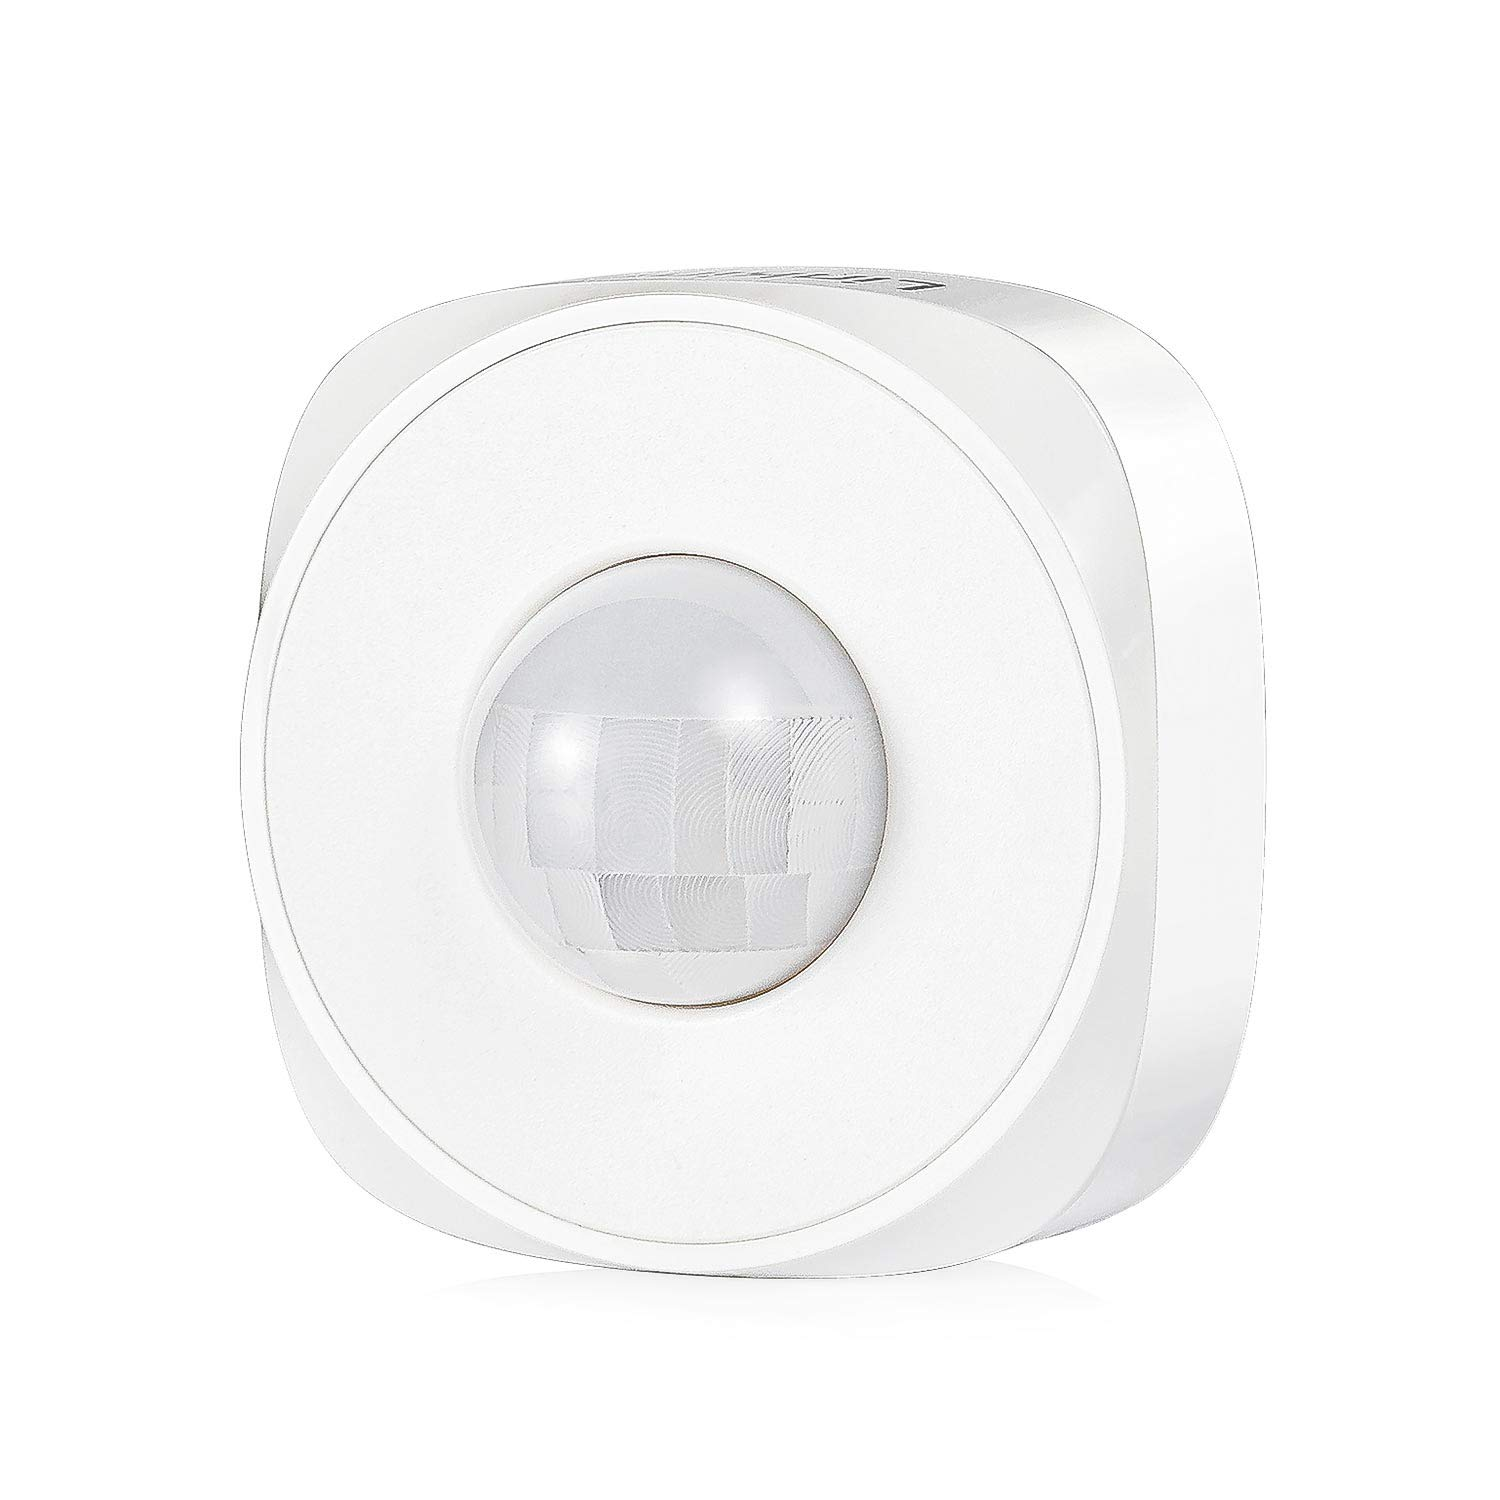 Linkind PIR Motion Sensor, Wireless Motion Detector, Zigbee White, for DIY Use with Linkind Home Security System, Automation with Linkind Smart Zigbee LED Lights, LINKIND Hub Required (NOT Included)